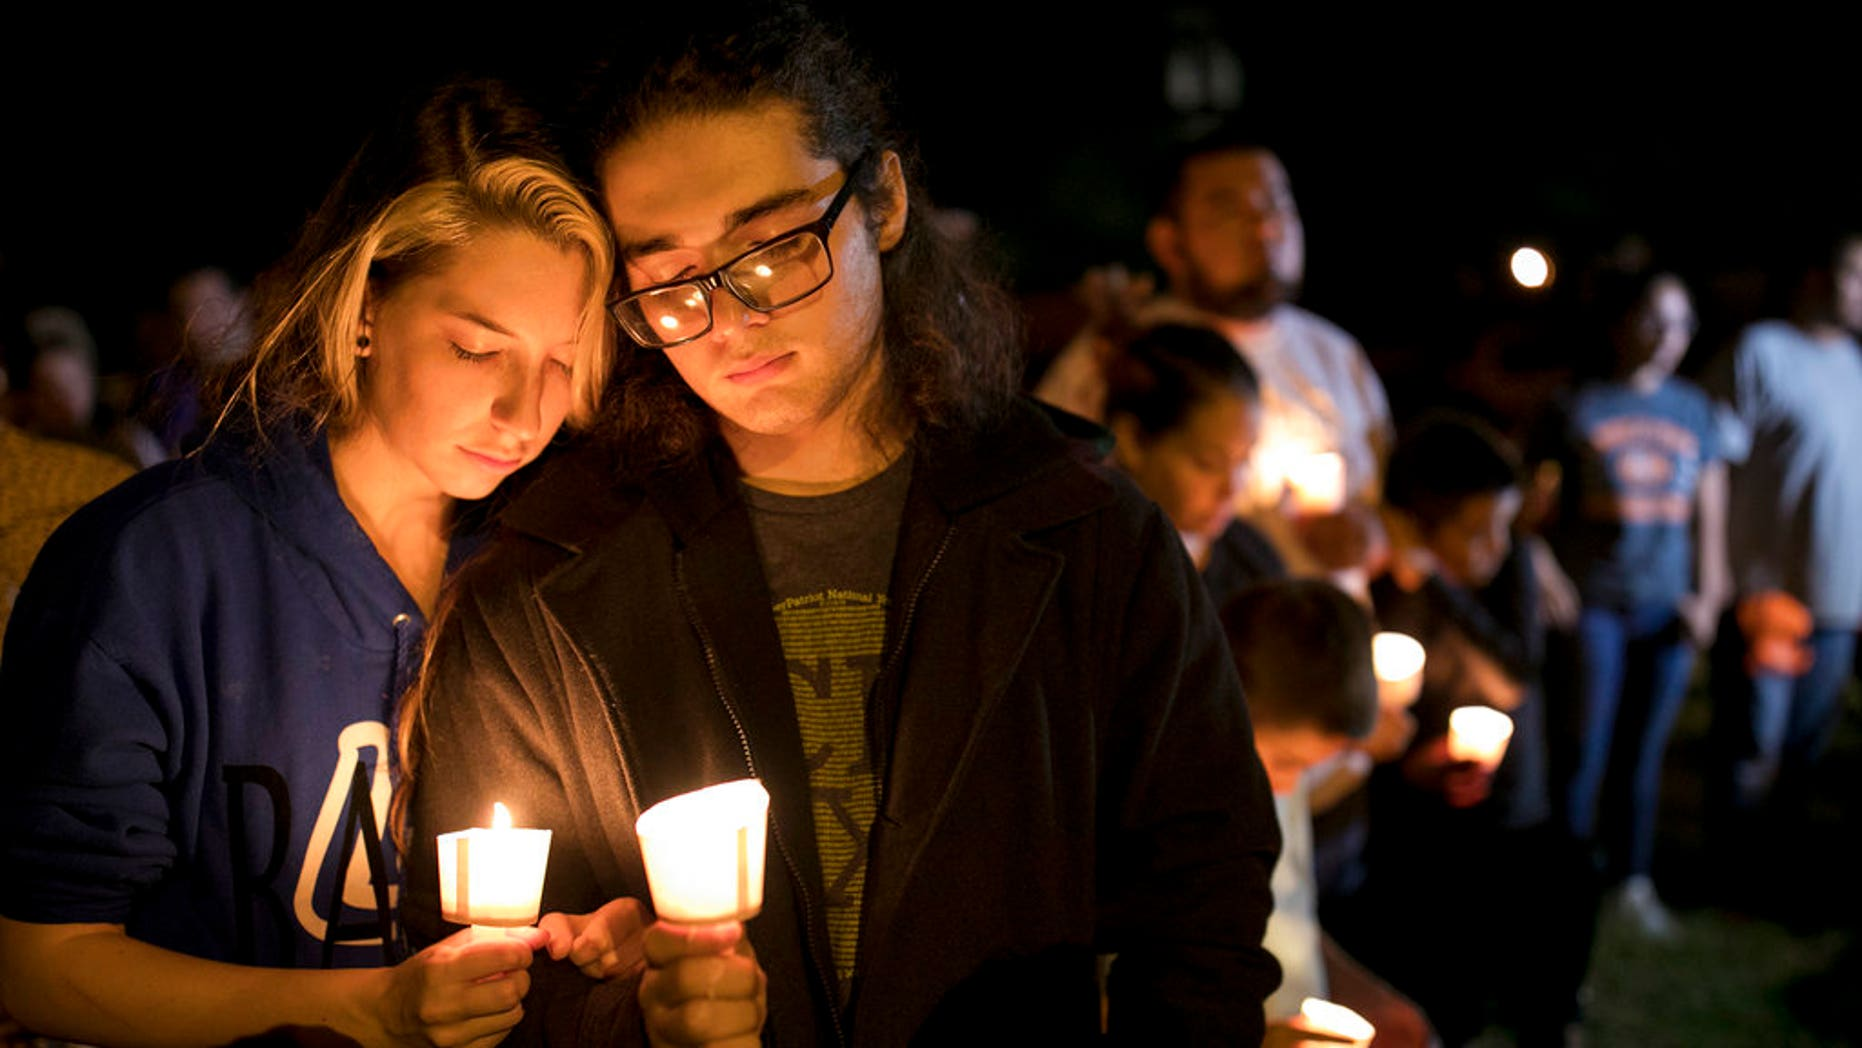 Bailey LeJeaune, 17, and David Betancourt, 18, hold candles during a vigil in Sutherland Springs for the victims of a deadly shooting at the First Baptist Church in Sutherland Springs, Texas, Sunday, Nov. 5, 2017. A man opened fire inside of the church in the small South Texas community on Sunday, killing more than 20 people. (Jay Janner/Austin American-Statesman via AP)